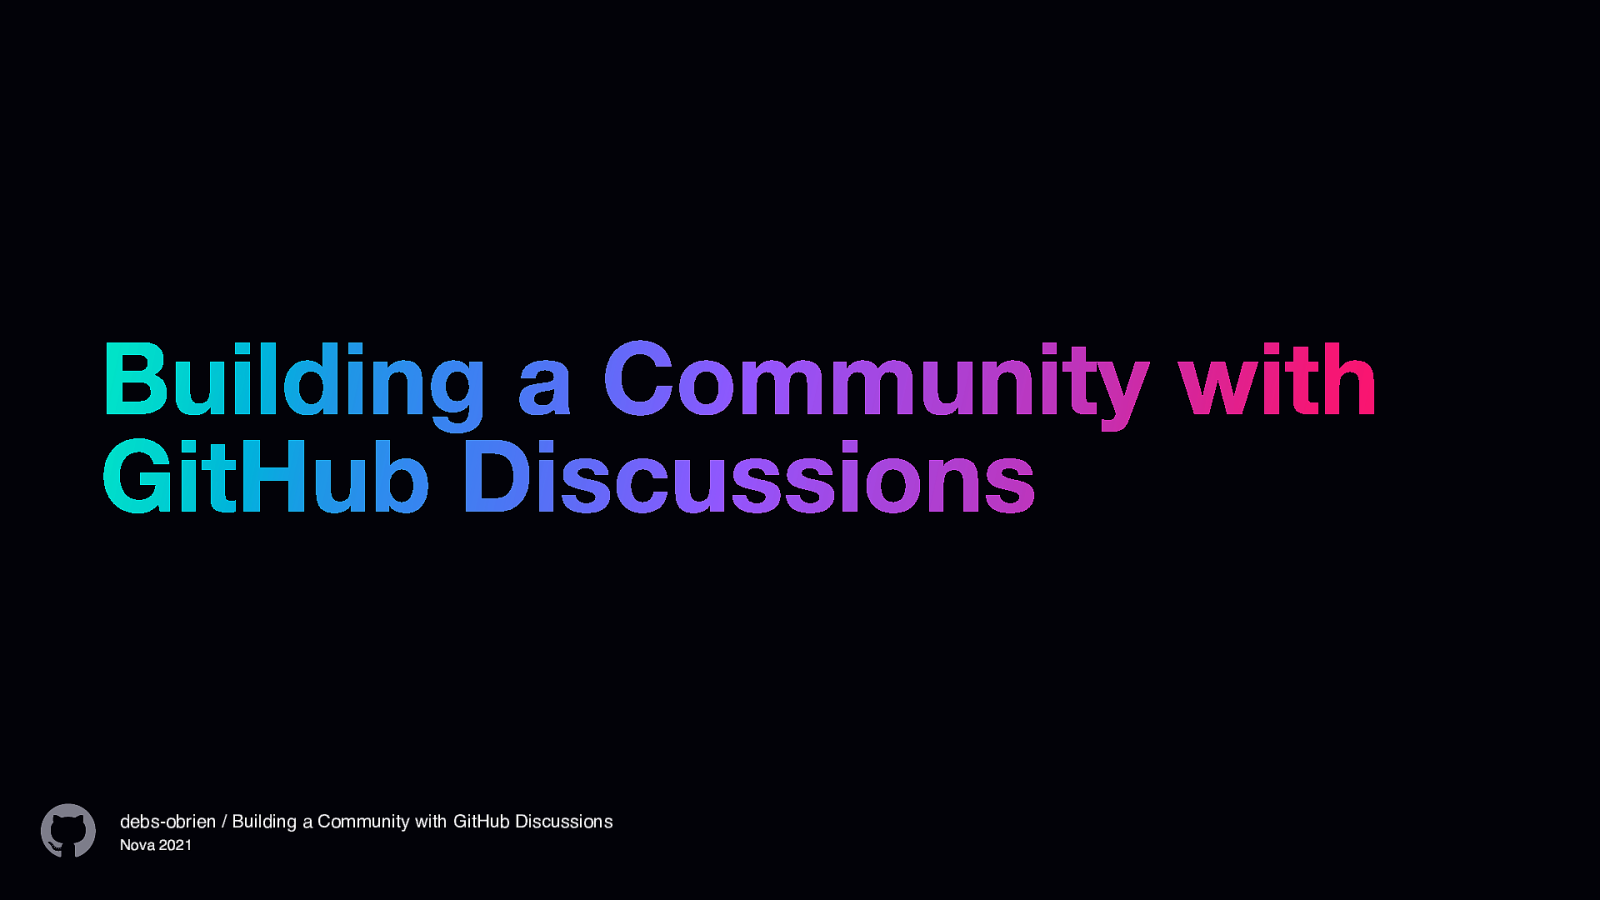 Building a Community with GitHub Discussions